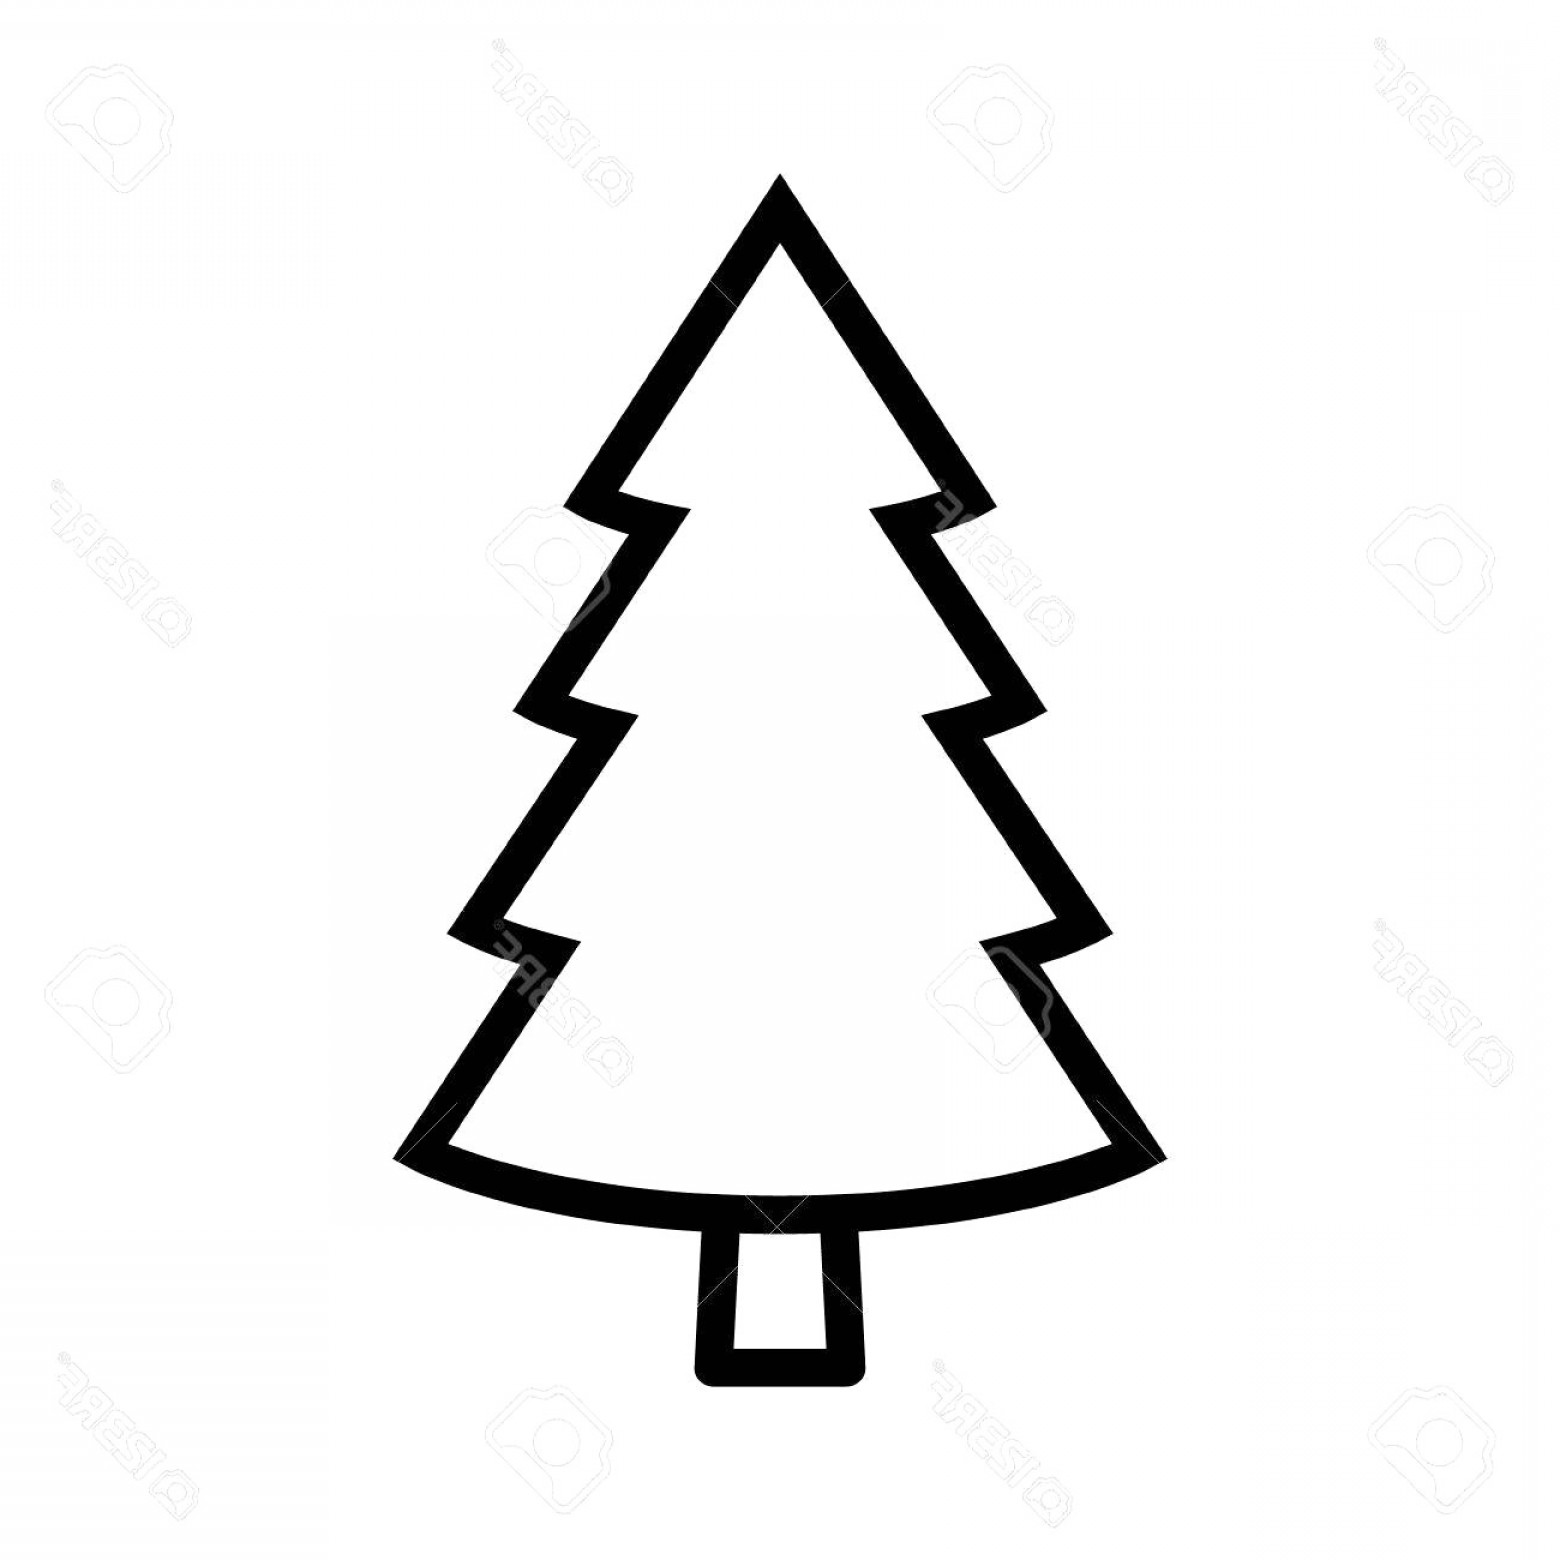 Library Of Stylized Pine Tree Svg Black And White Library